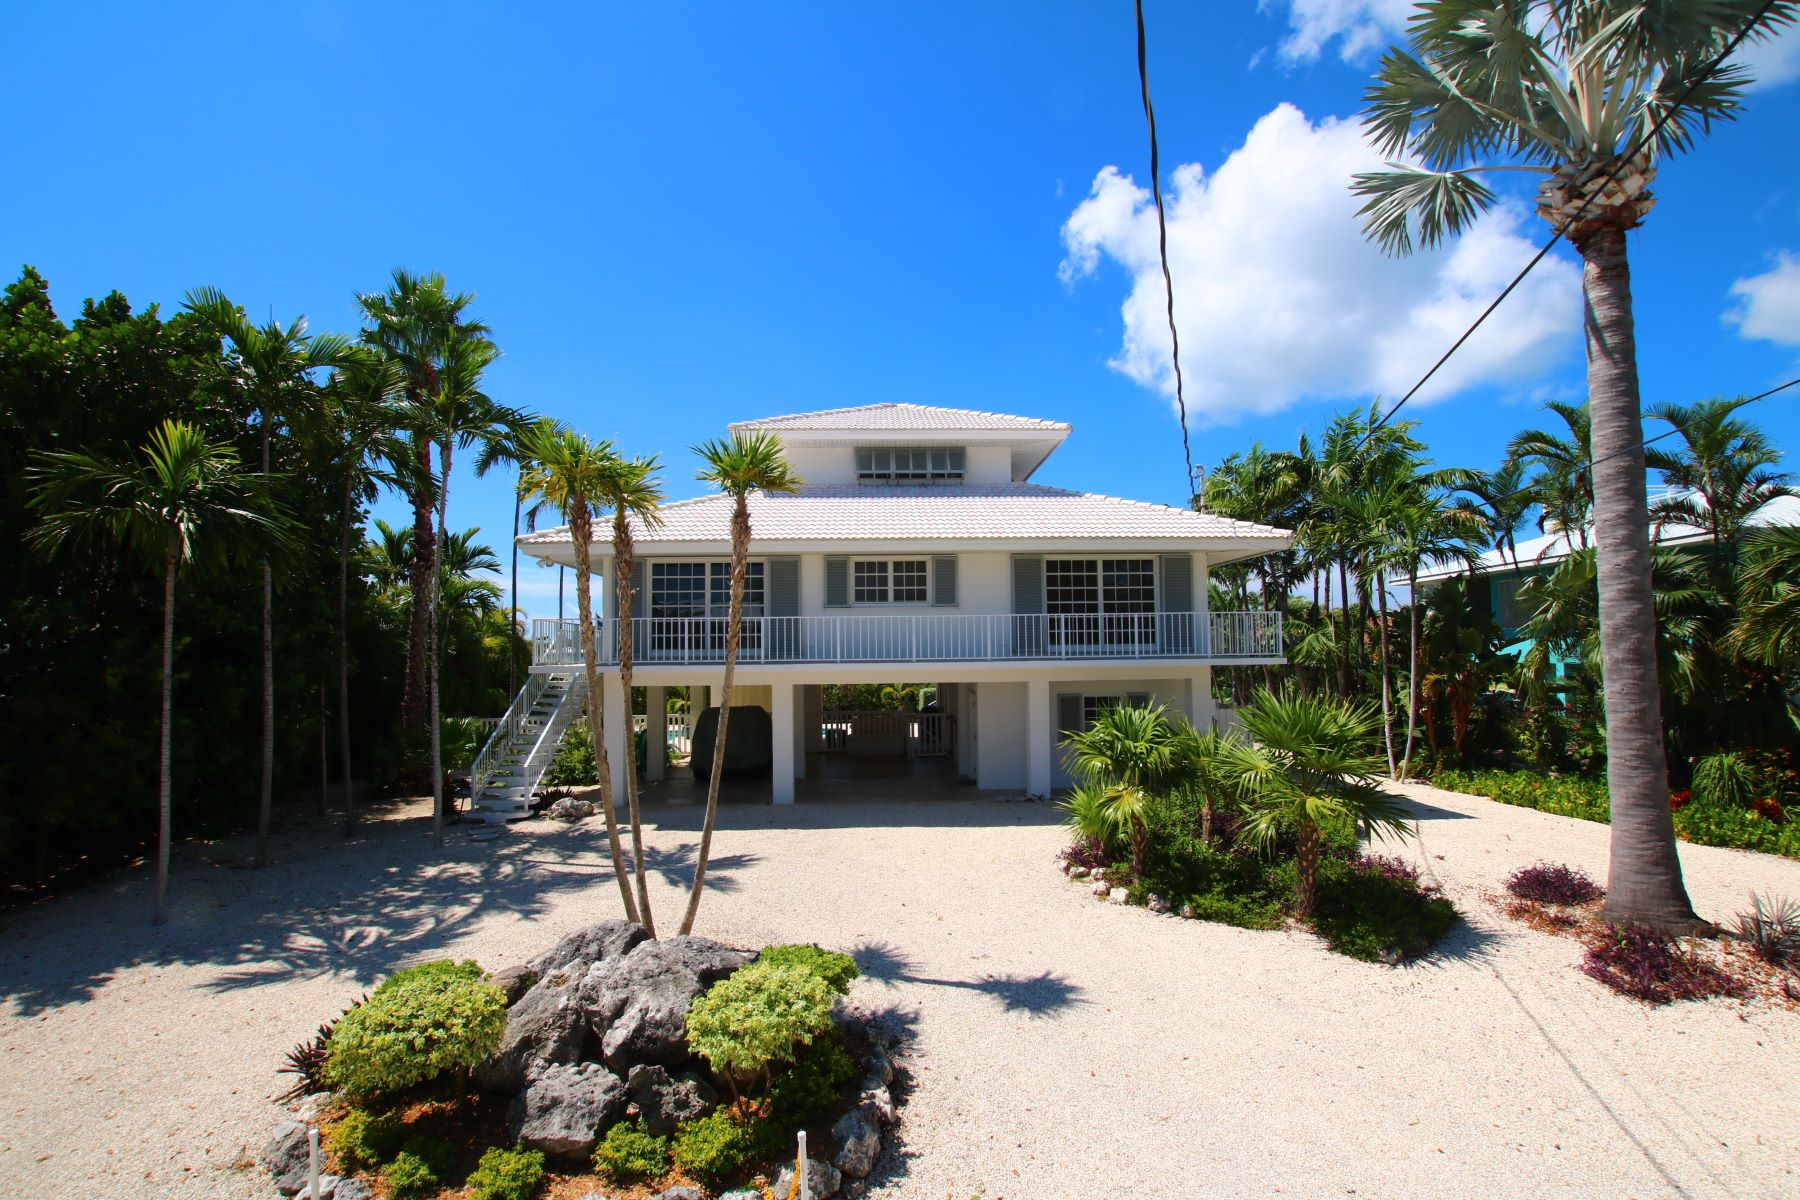 واحد منزل الأسرة للـ Sale في Anglers Dream Home 229 S Anglers Dr Marathon, Florida 33050 United States